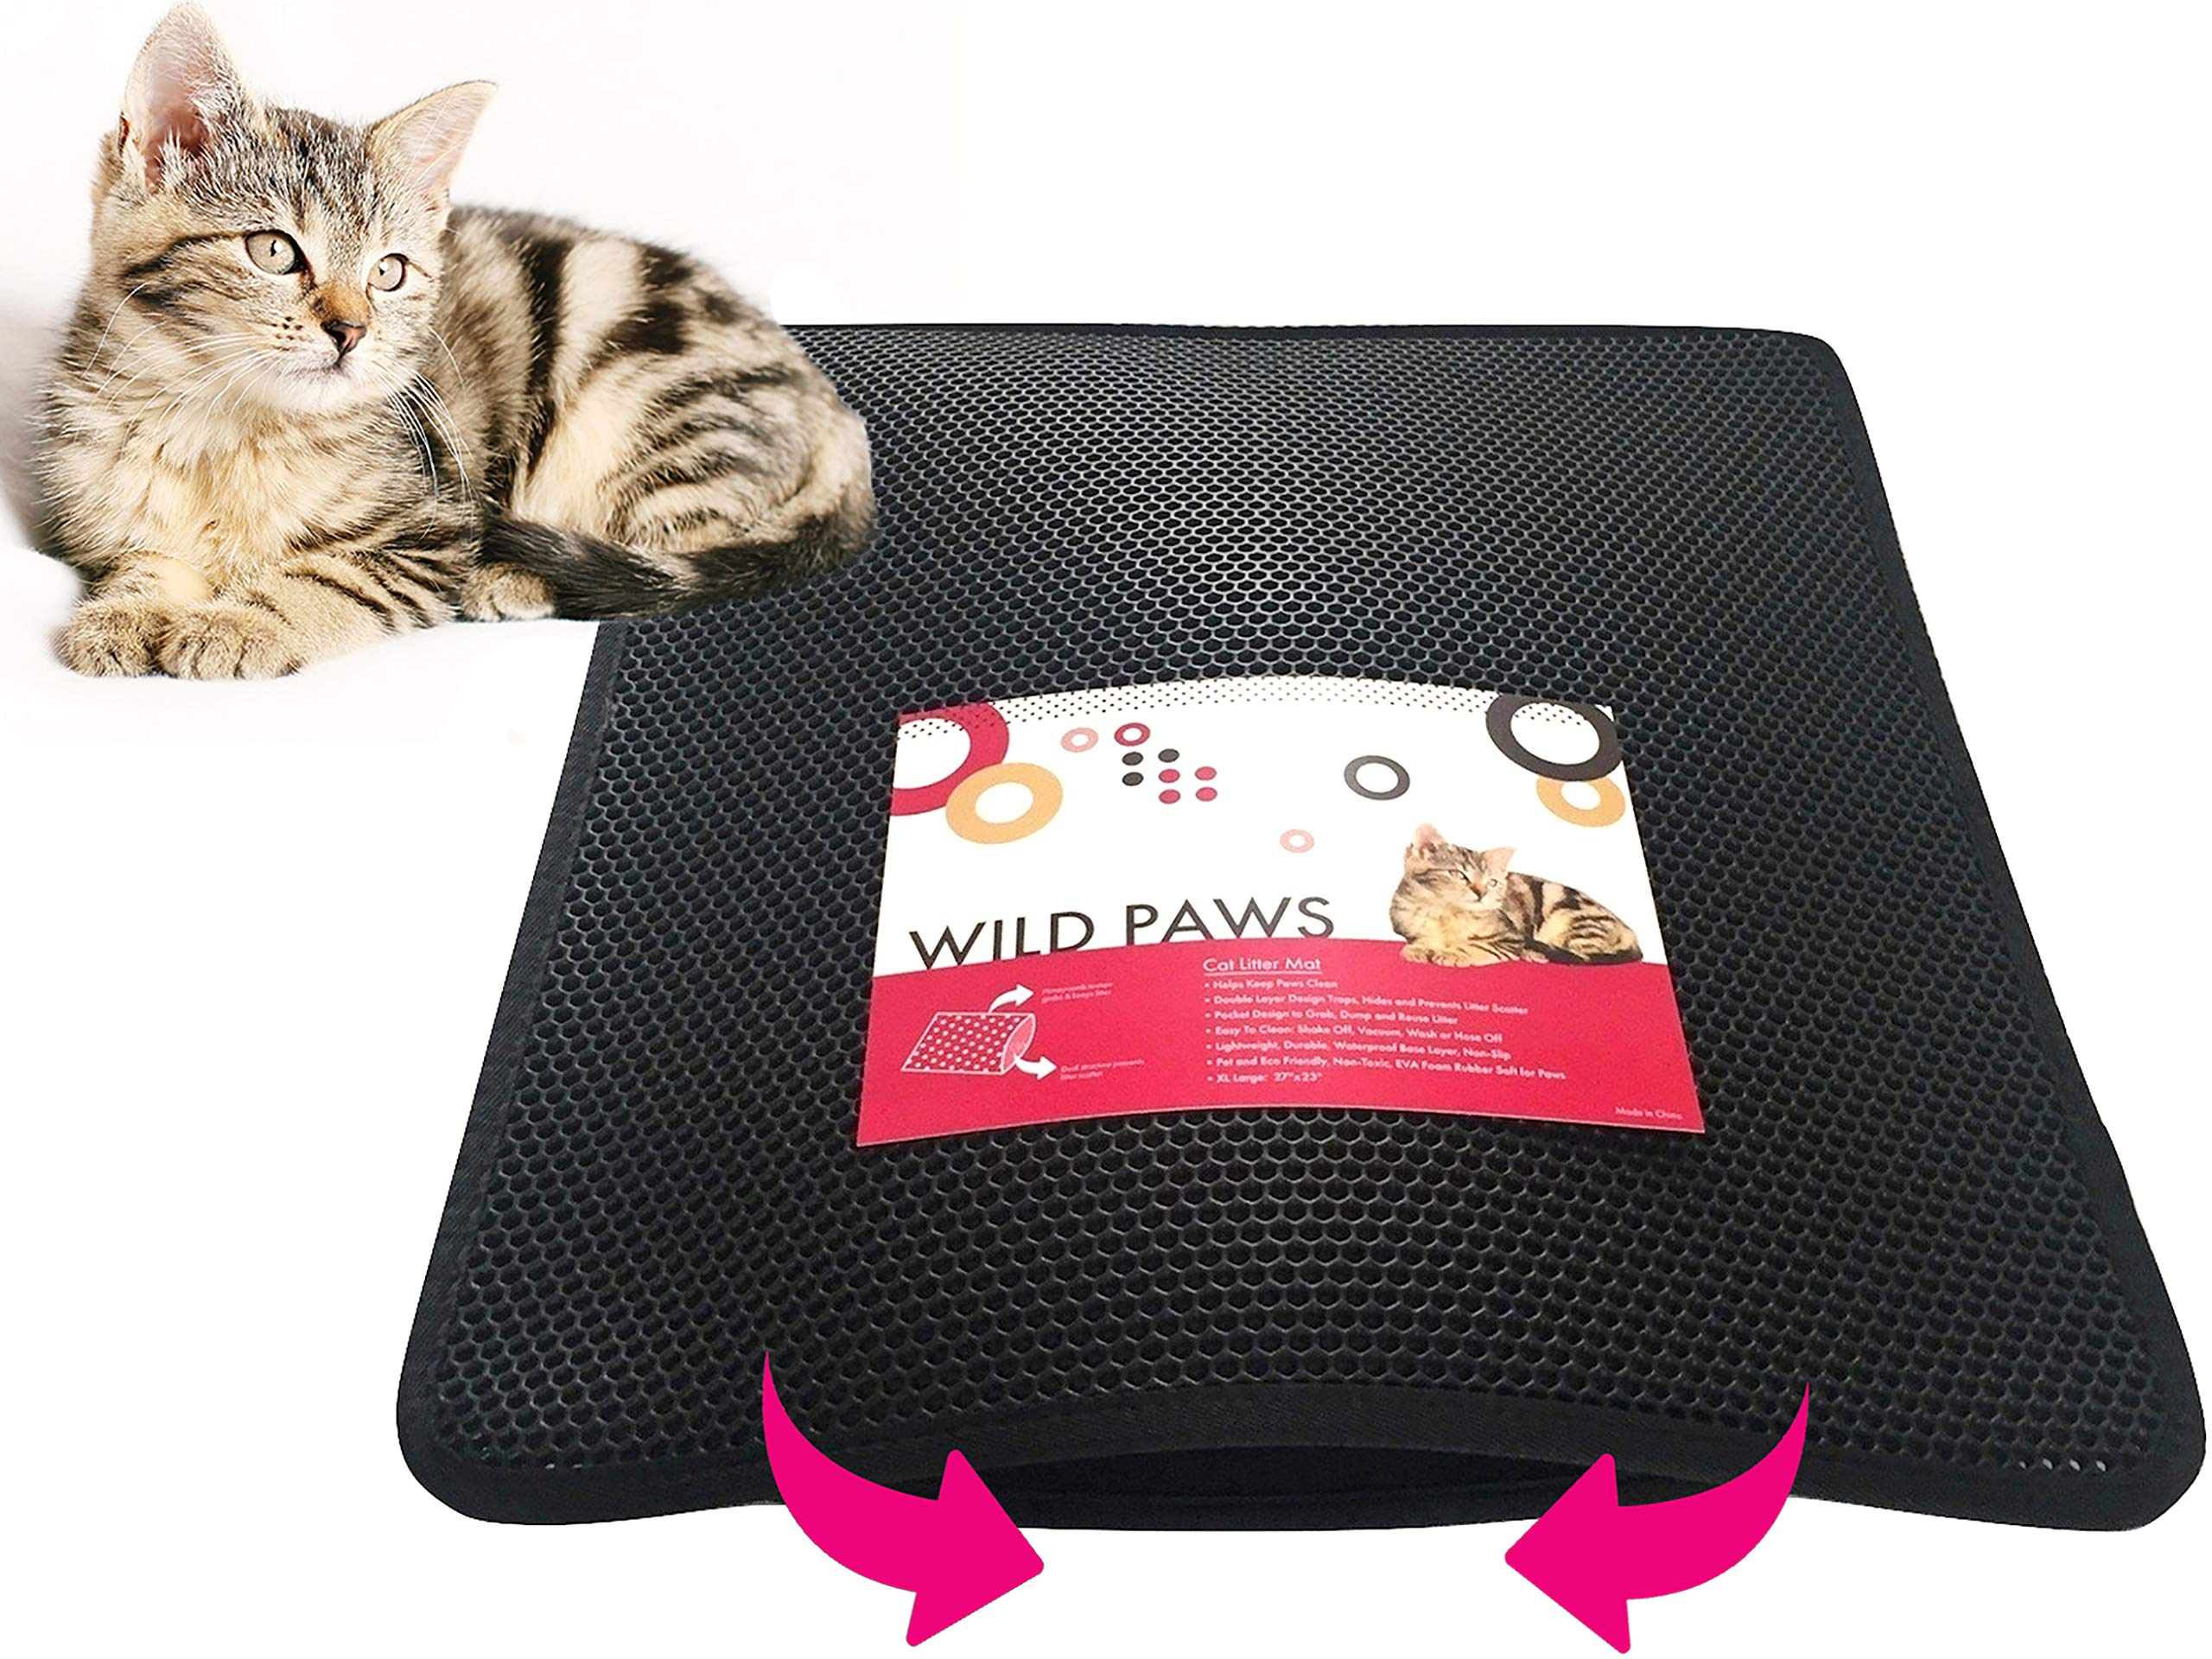 Wild Paws Cat Litter Mat XL Double-Layer Honeycomb Cat Litter Trapper Mat with Waterproof Base Layer ECO and Pet Friendly Non-Toxic Light Weight Soft on Paws EVA Foam Rubber (27 x23 inches)